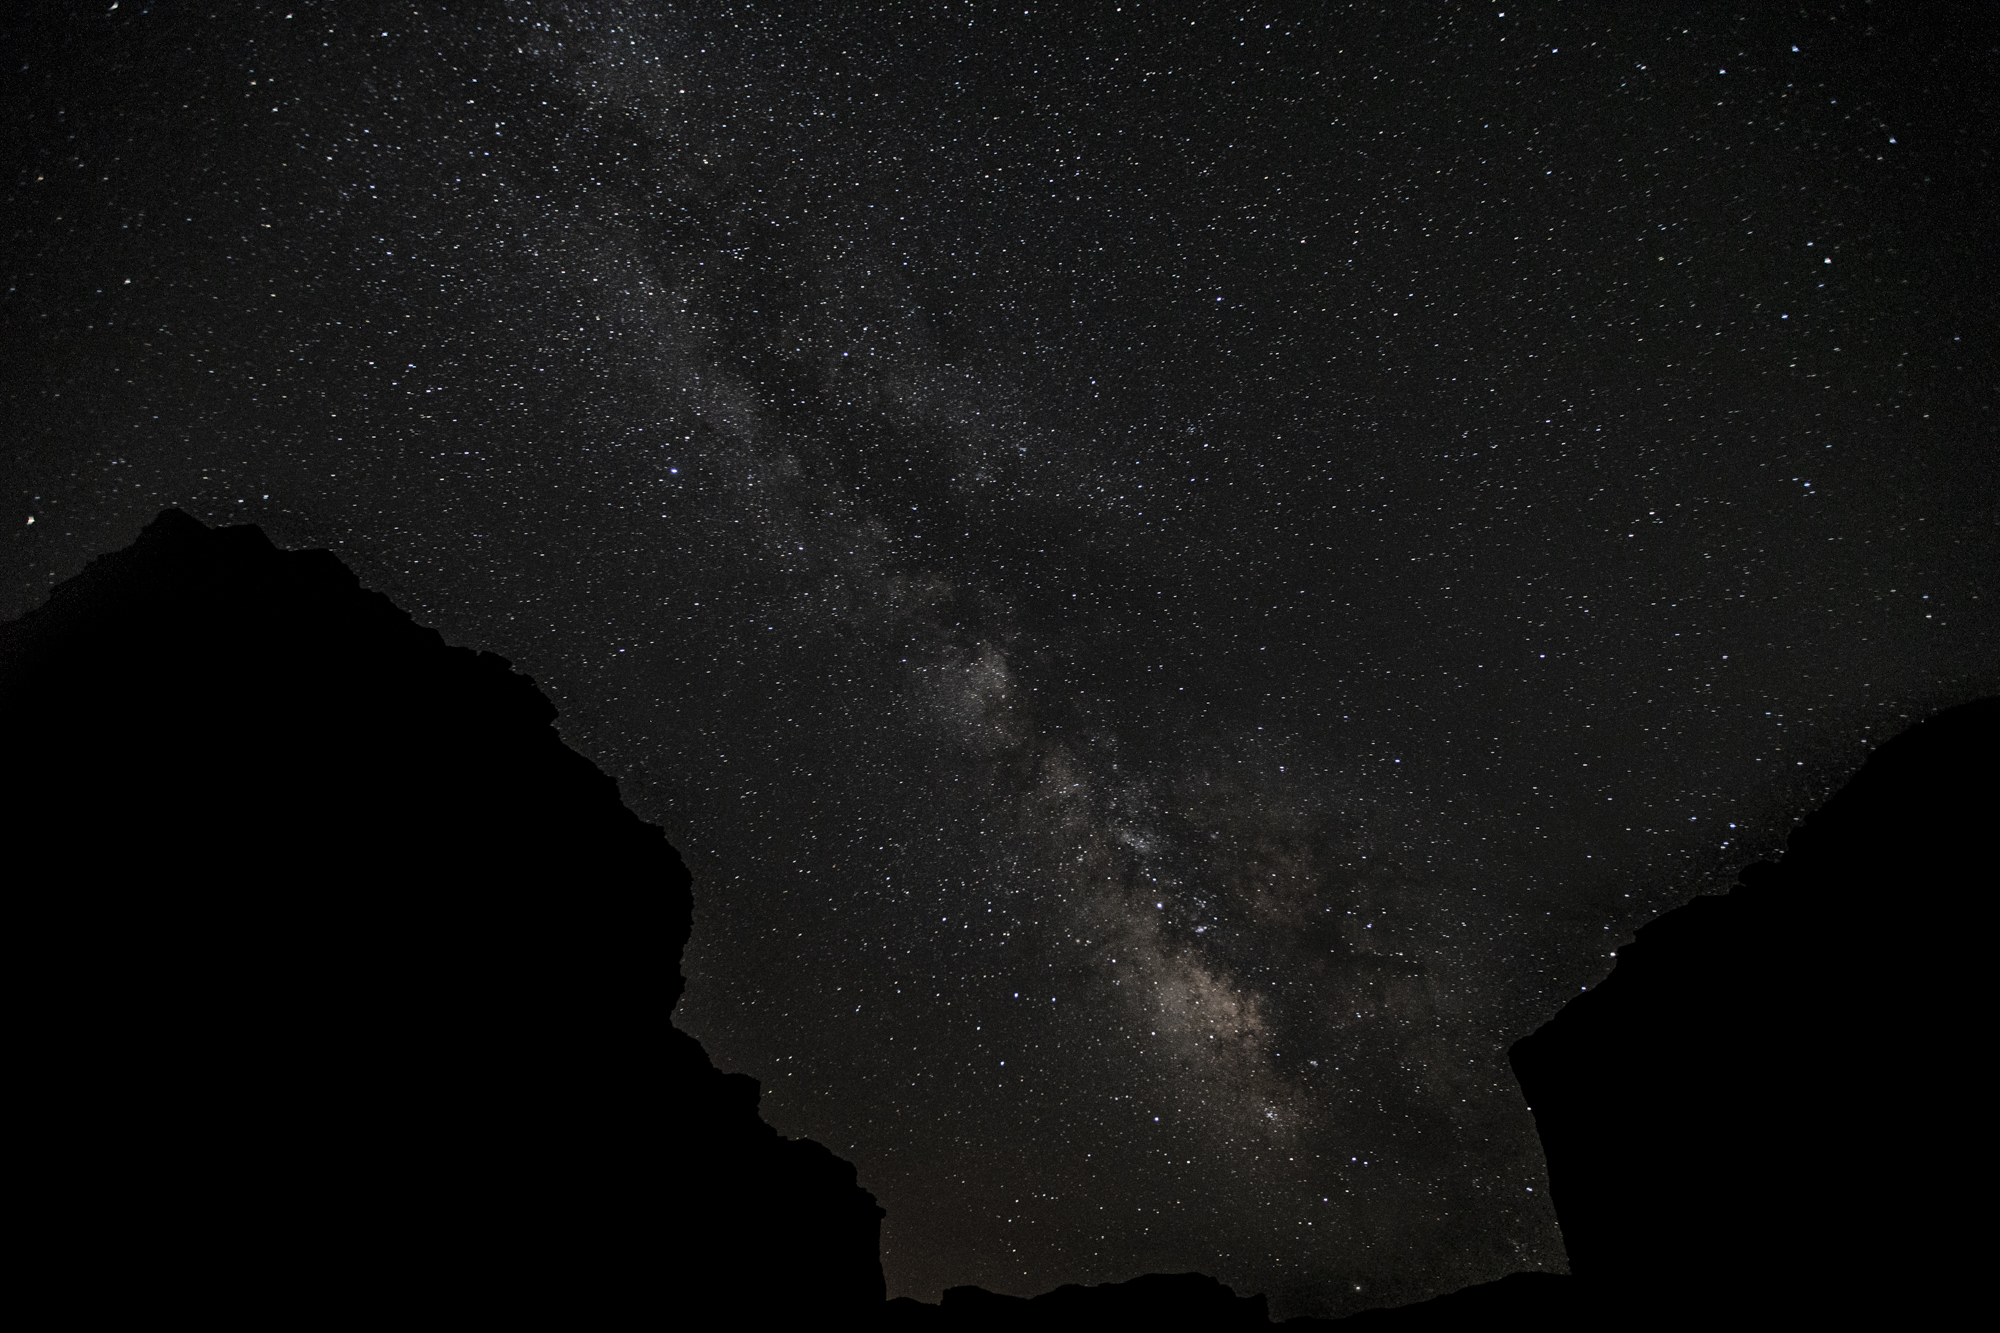 First time seeing the milky way within the canyon walls.